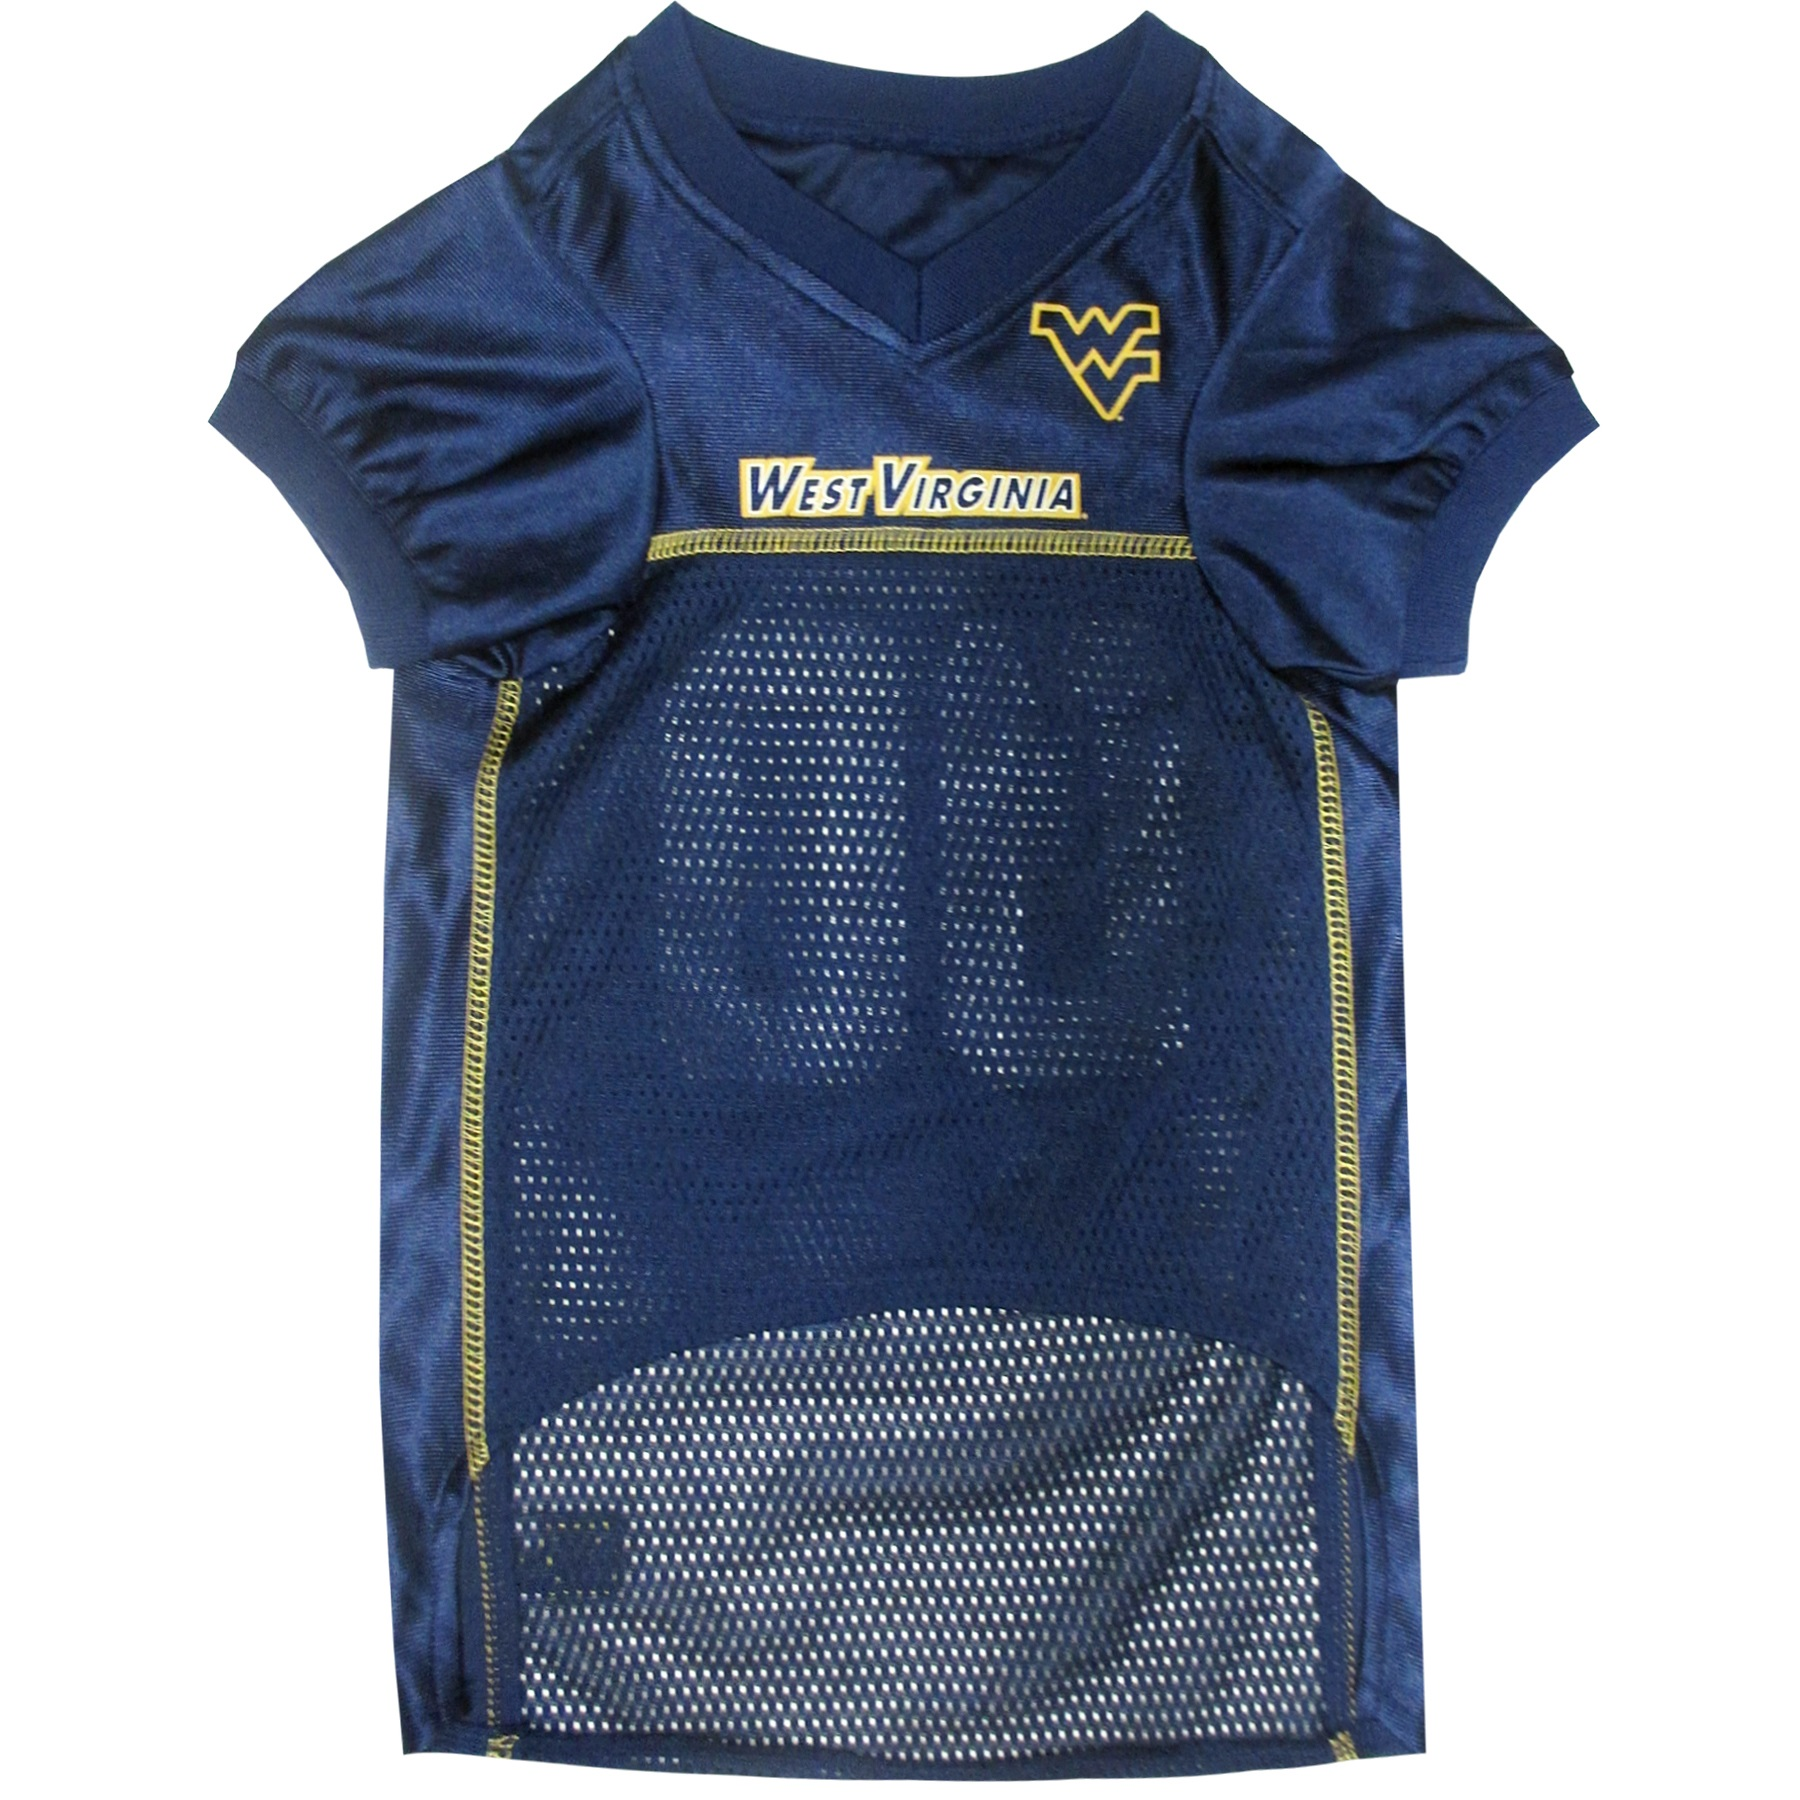 new products 6df7e 82d90 West Virginia University Mesh Football Jersey